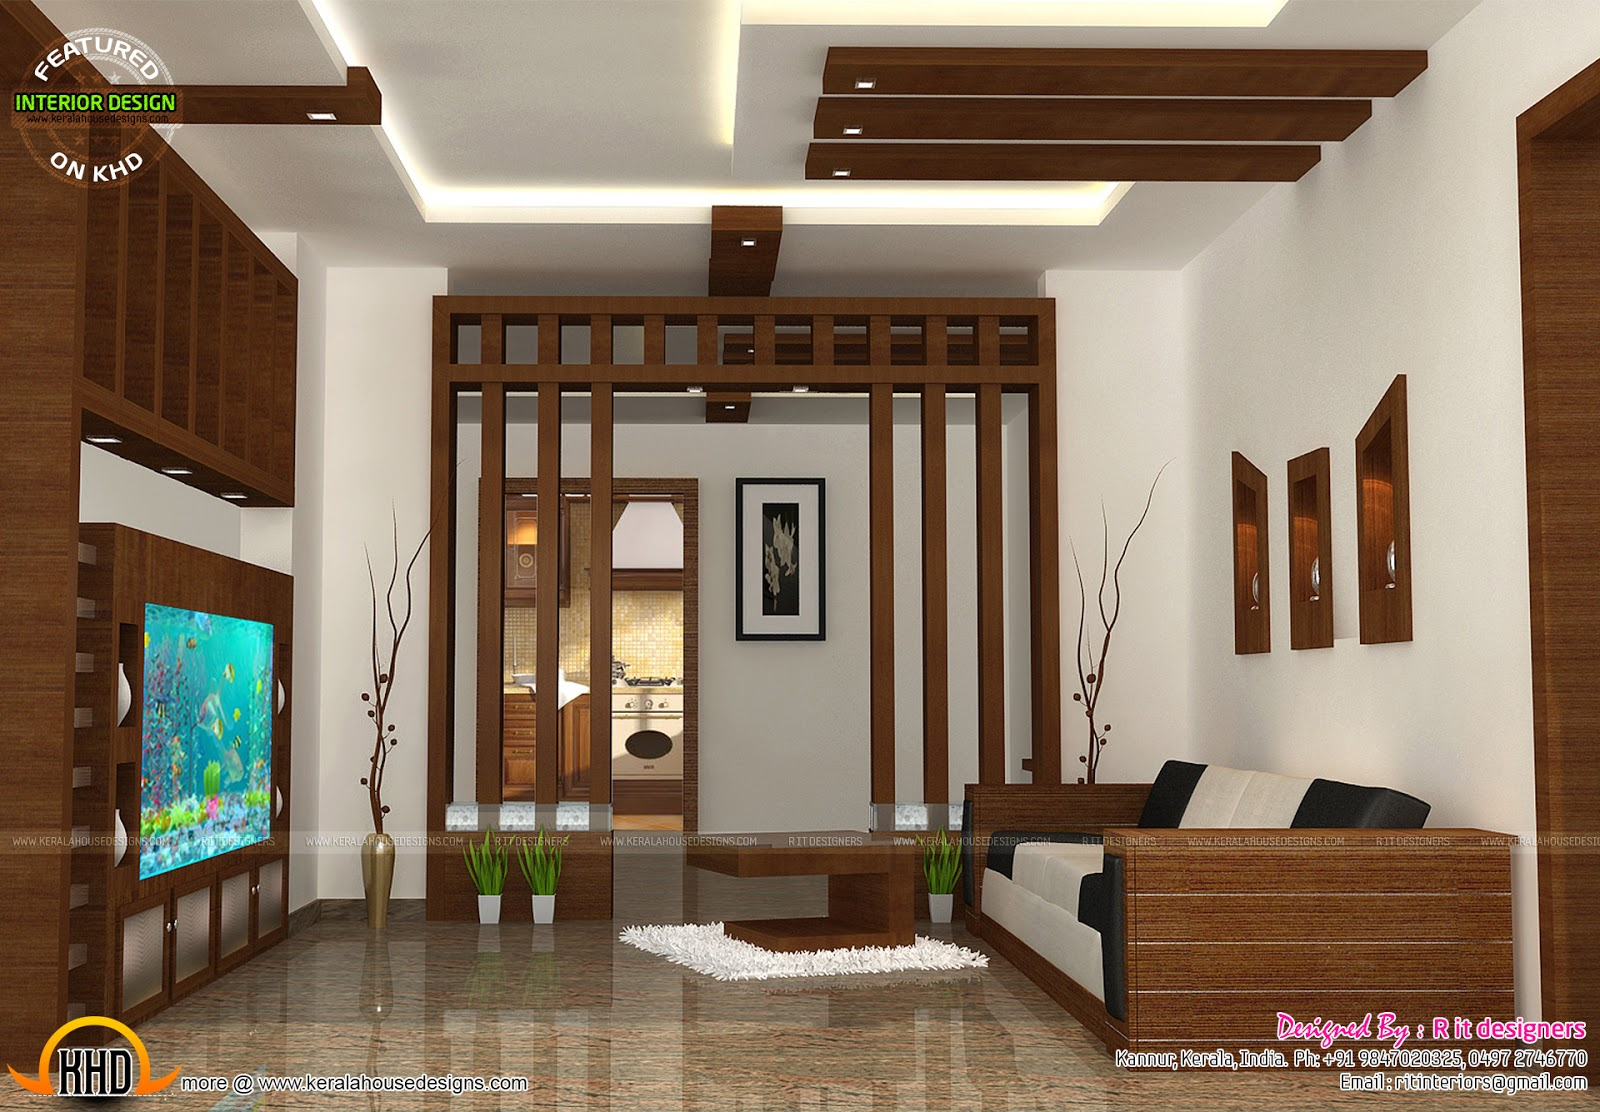 Wooden finish interiors kerala home design and floor plans Low cost interior design for homes in kerala